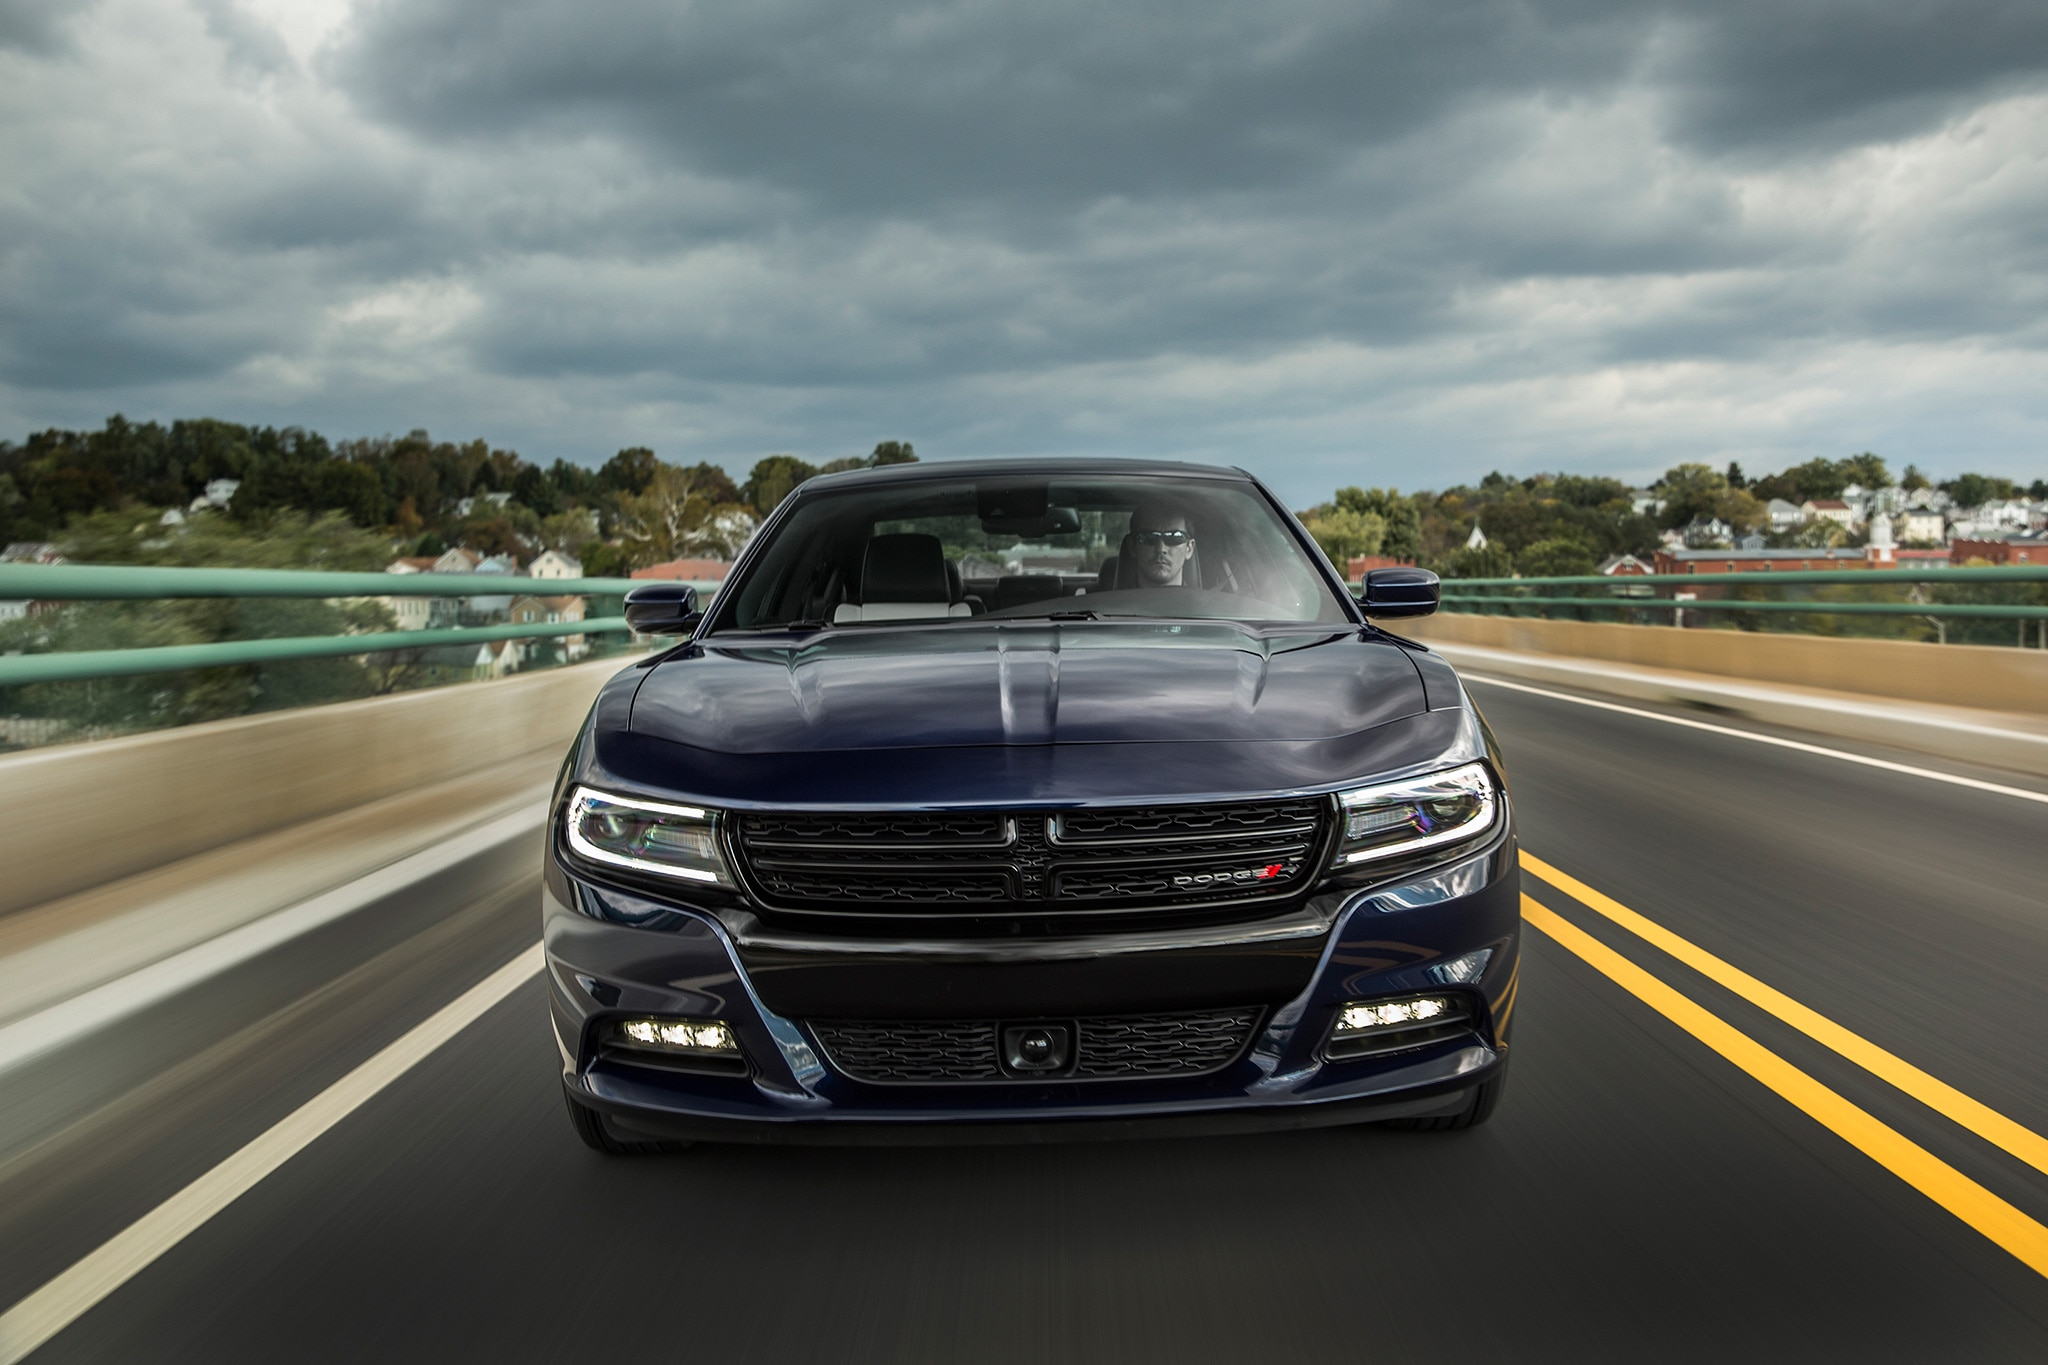 Daytona Charger 2017 Black >> Report: Dodge Barracuda, Next Charger, Jeep Track Hawk ...